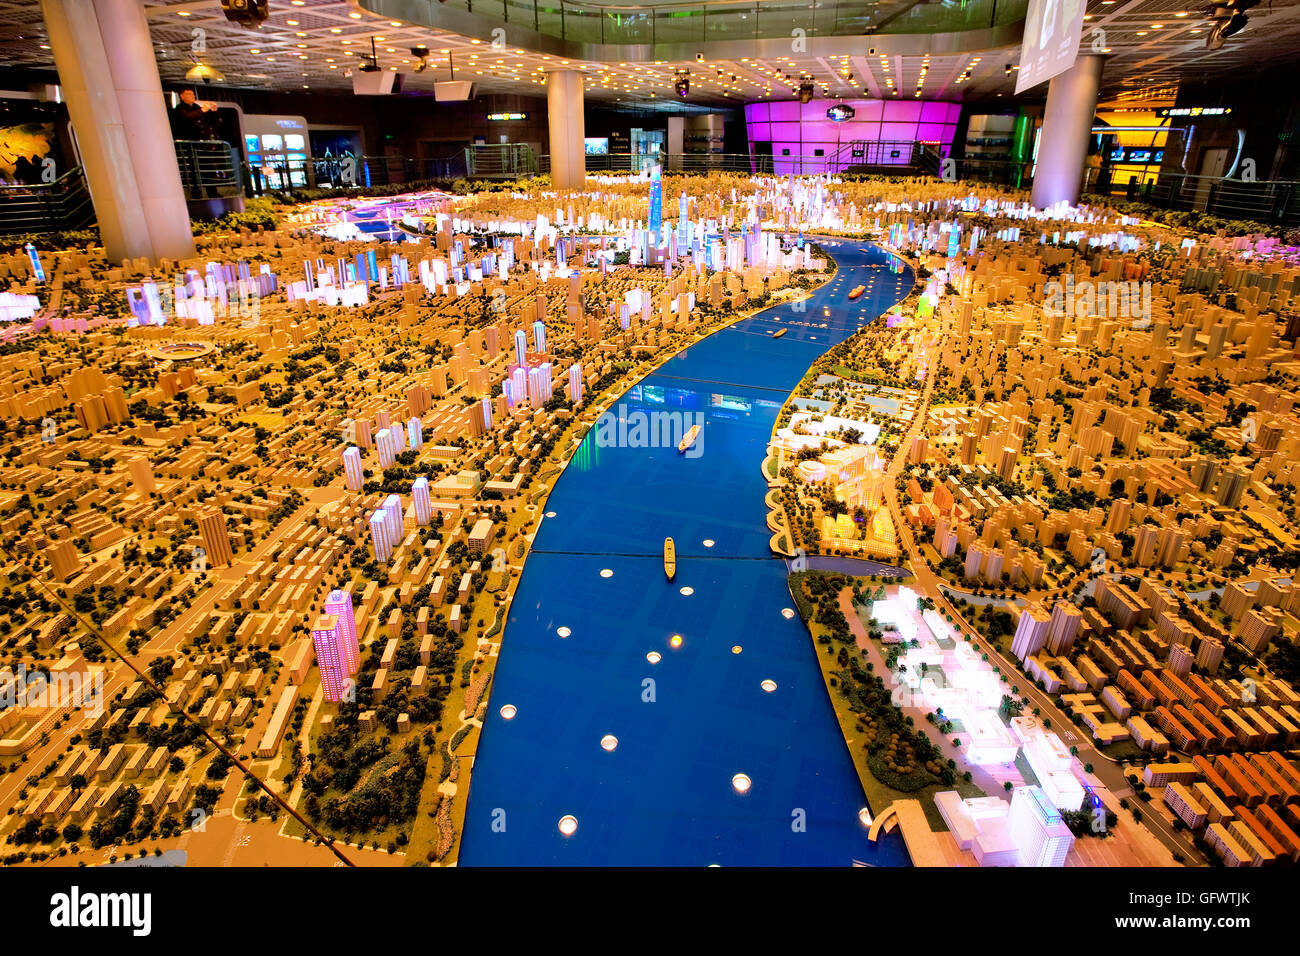 Scale model of Shanghai at the Shanghai Urban Planning Exhibition Center, China - Stock Image